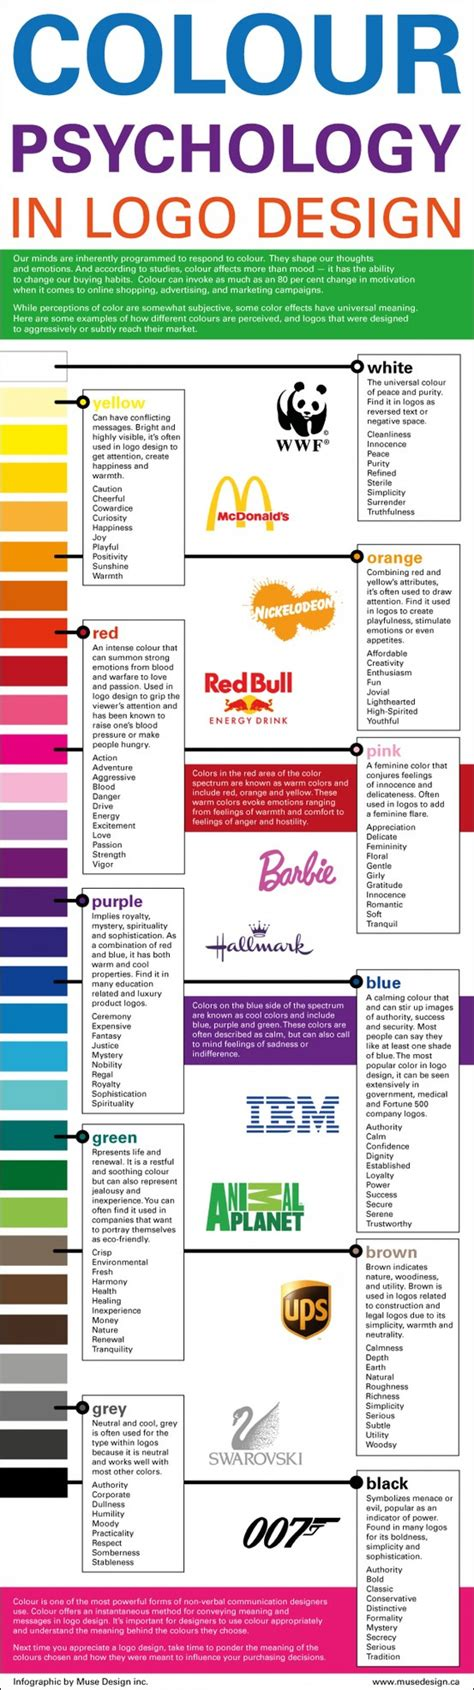 psychological effects of color color psychology in logo design visual ly